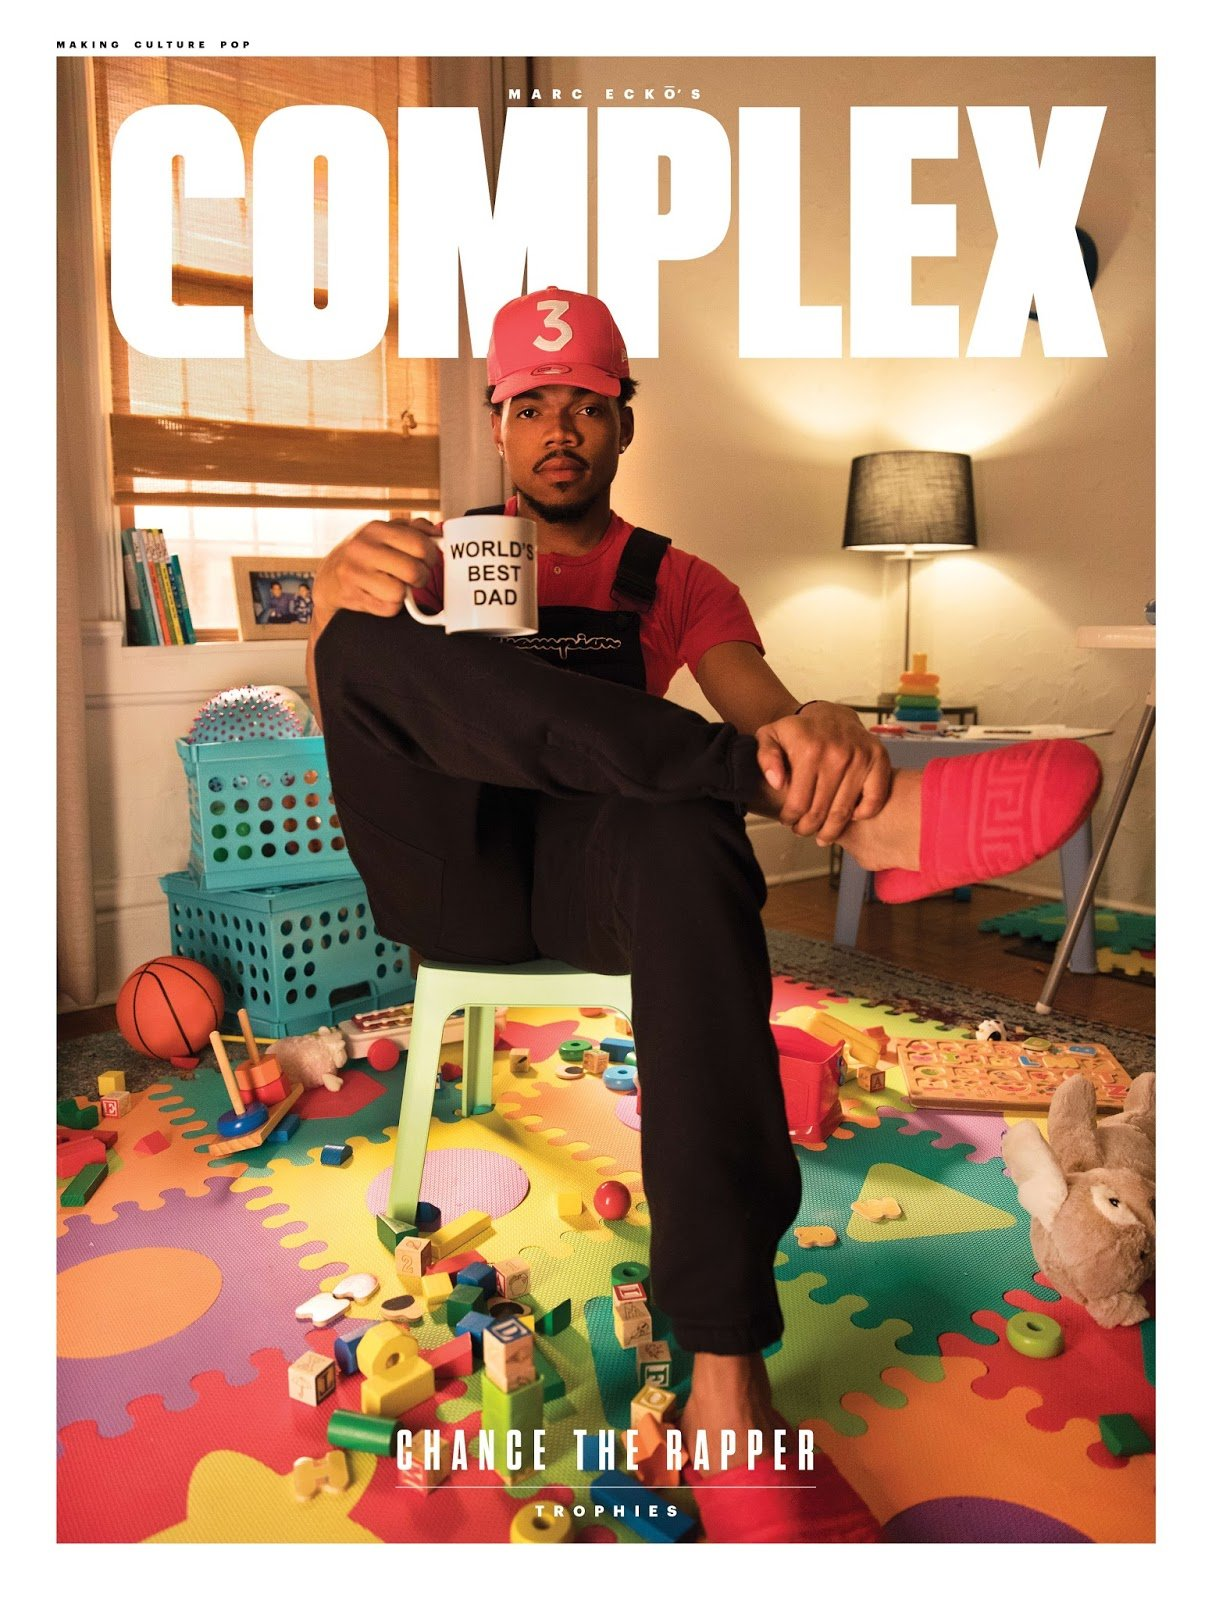 Chance The Rapper Speaks On Being A Father, Moving Back In With His Parents